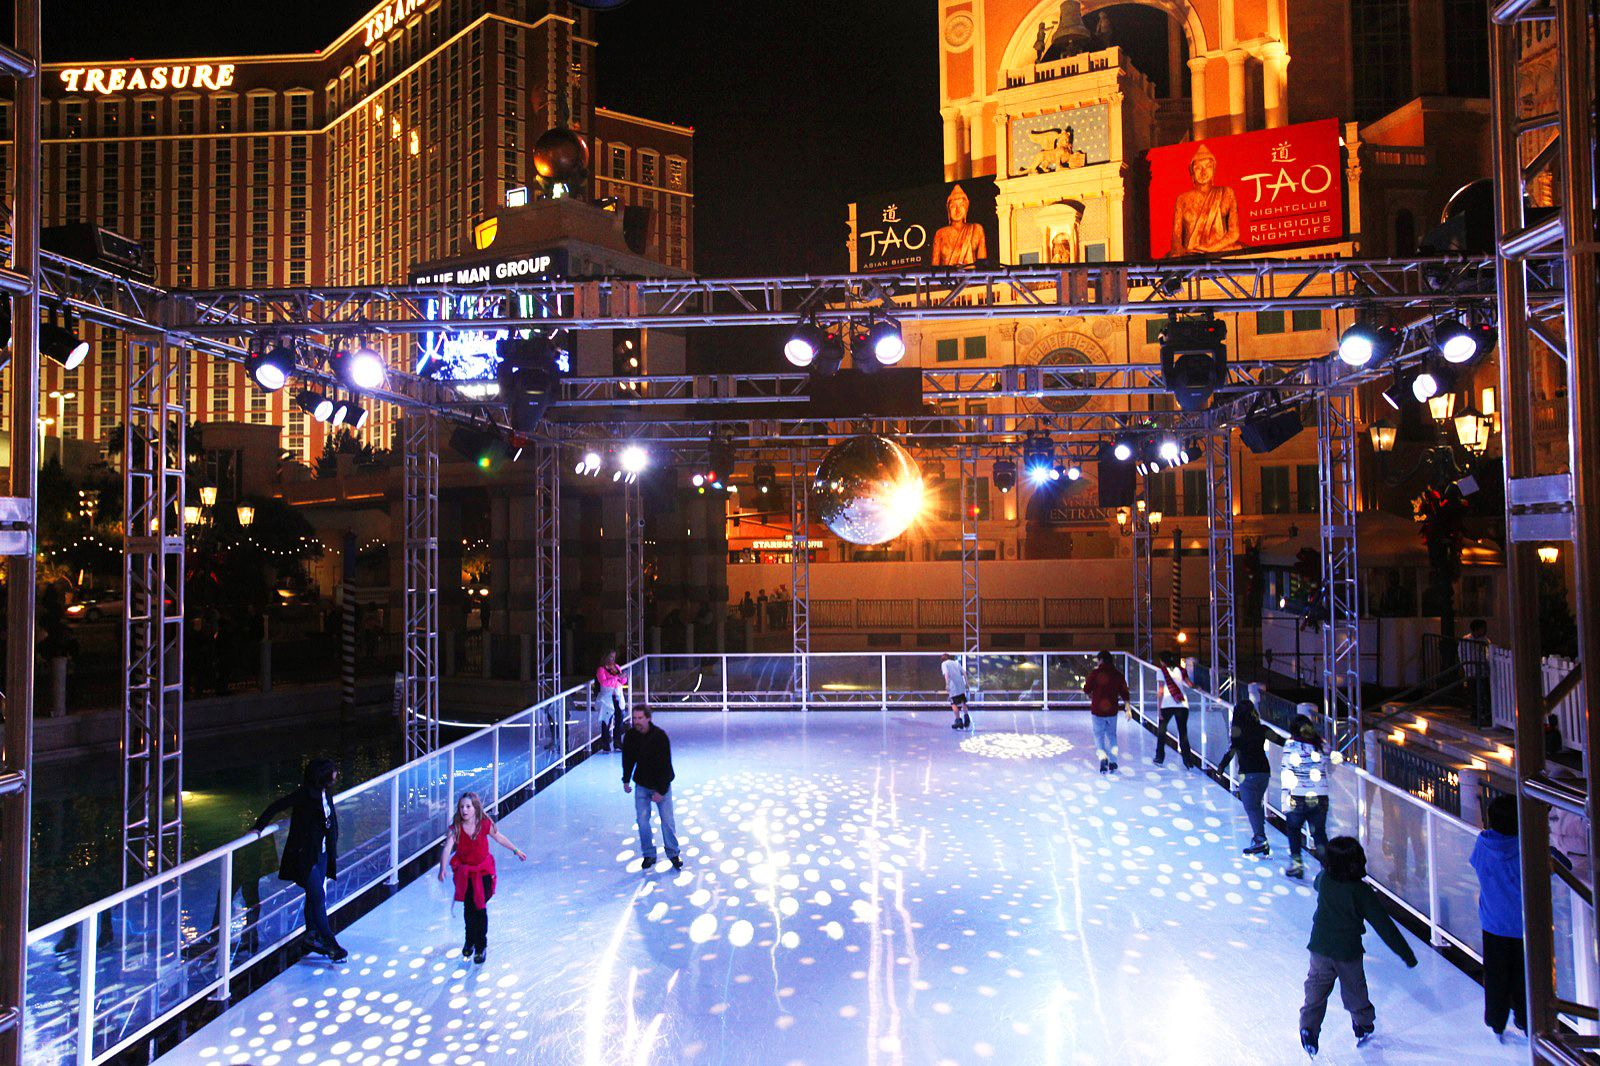 Ice Skating Comes To The Desert Later This Month As Cosmopolitan And Venetian Bring Winter Pastime Las Vegas Strip